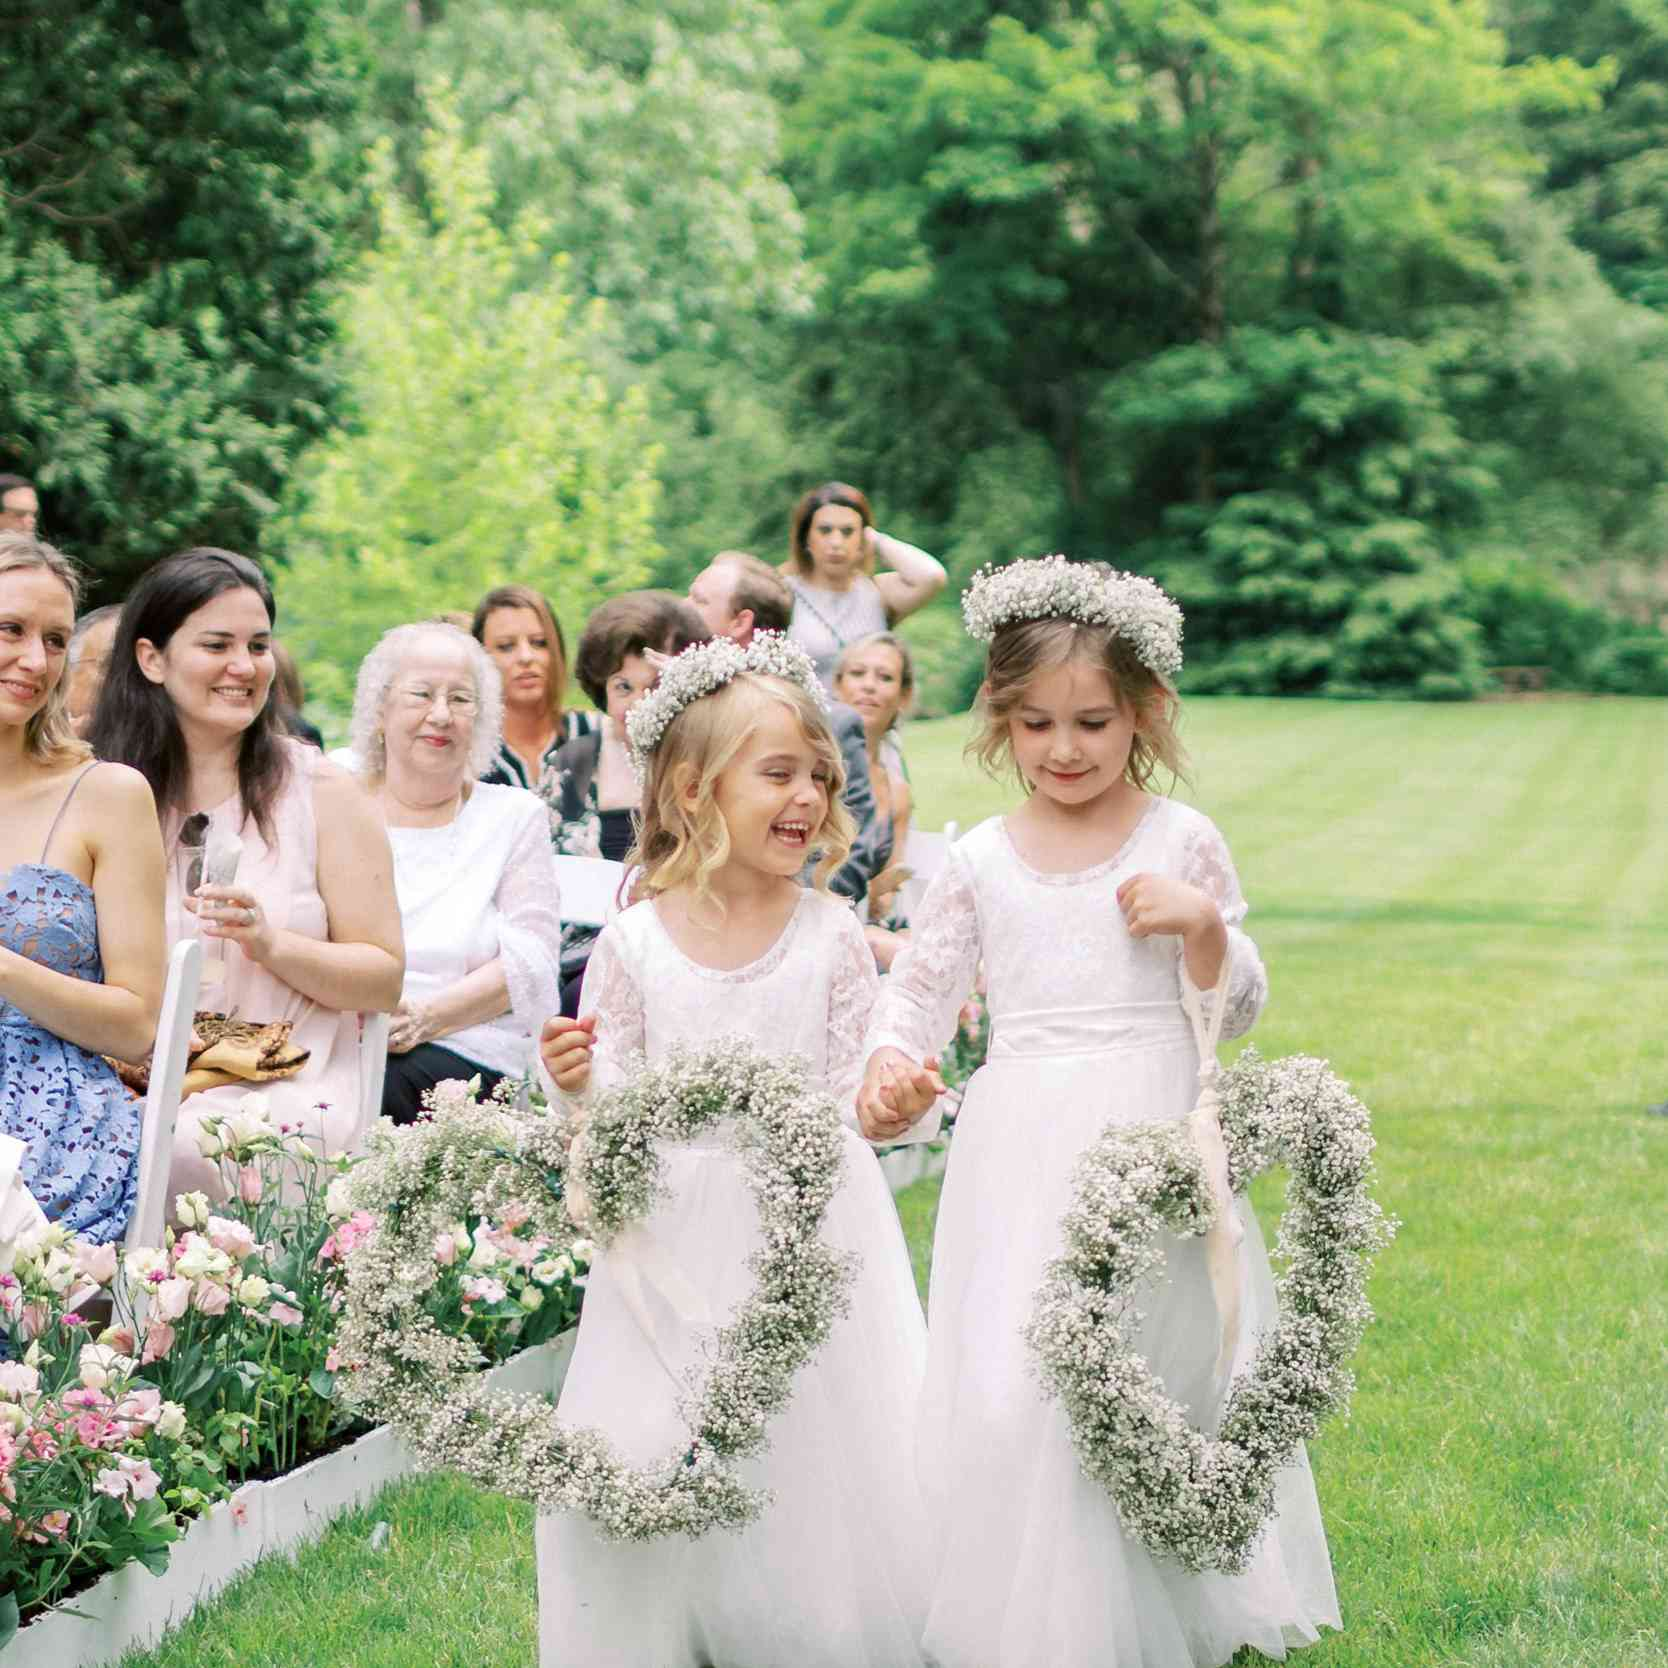 Two flower girls carrying baby's breath heart wreaths down the aisle with matching flower crowns